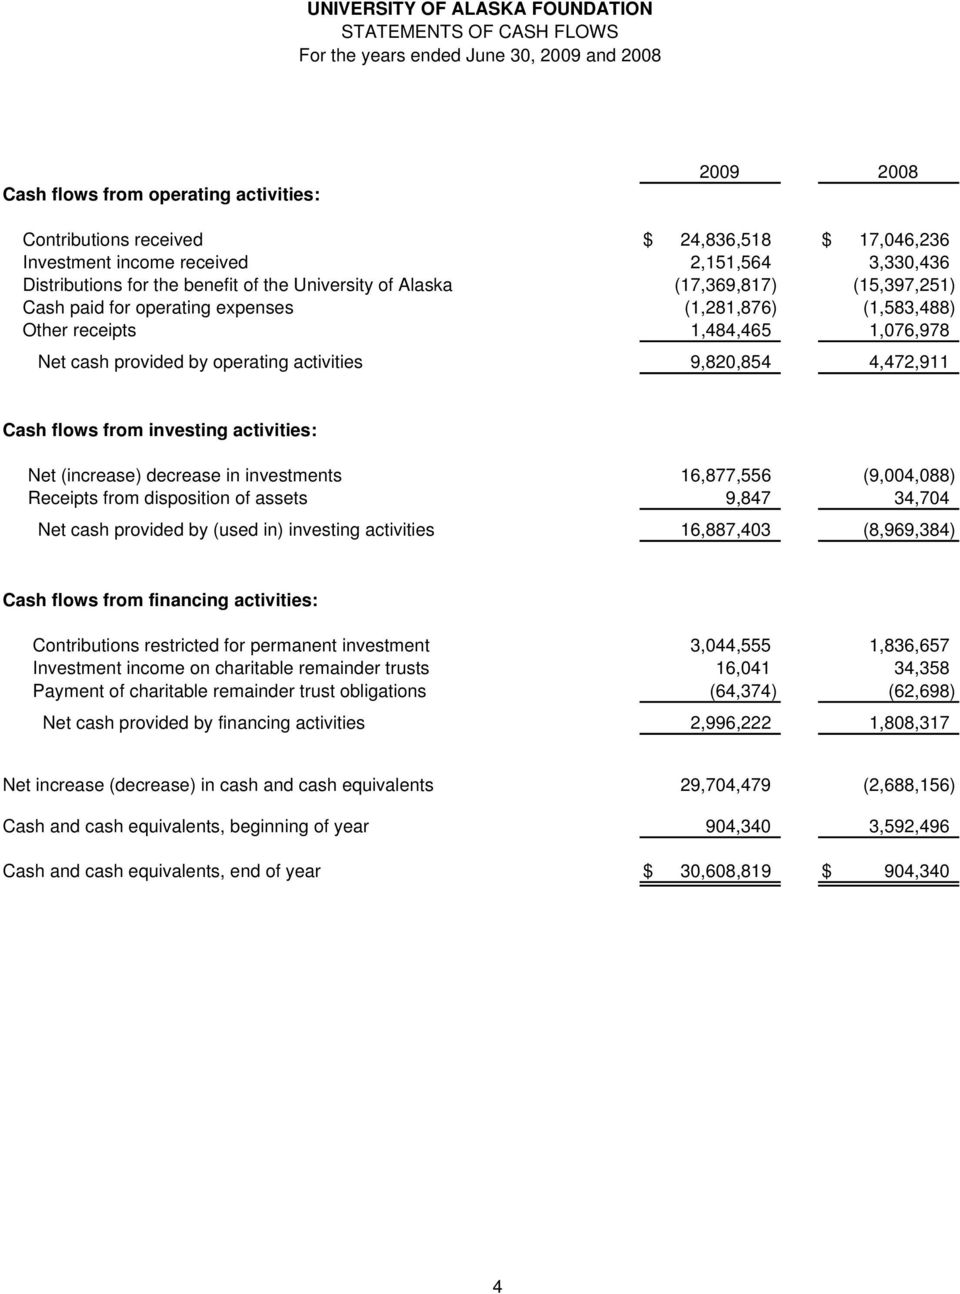 operating activities 9,820,854 4,472,911 Cash flows from investing activities: Net (increase) decrease in investments 16,877,556 (9,004,088) Receipts from disposition of assets 9,847 34,704 Net cash